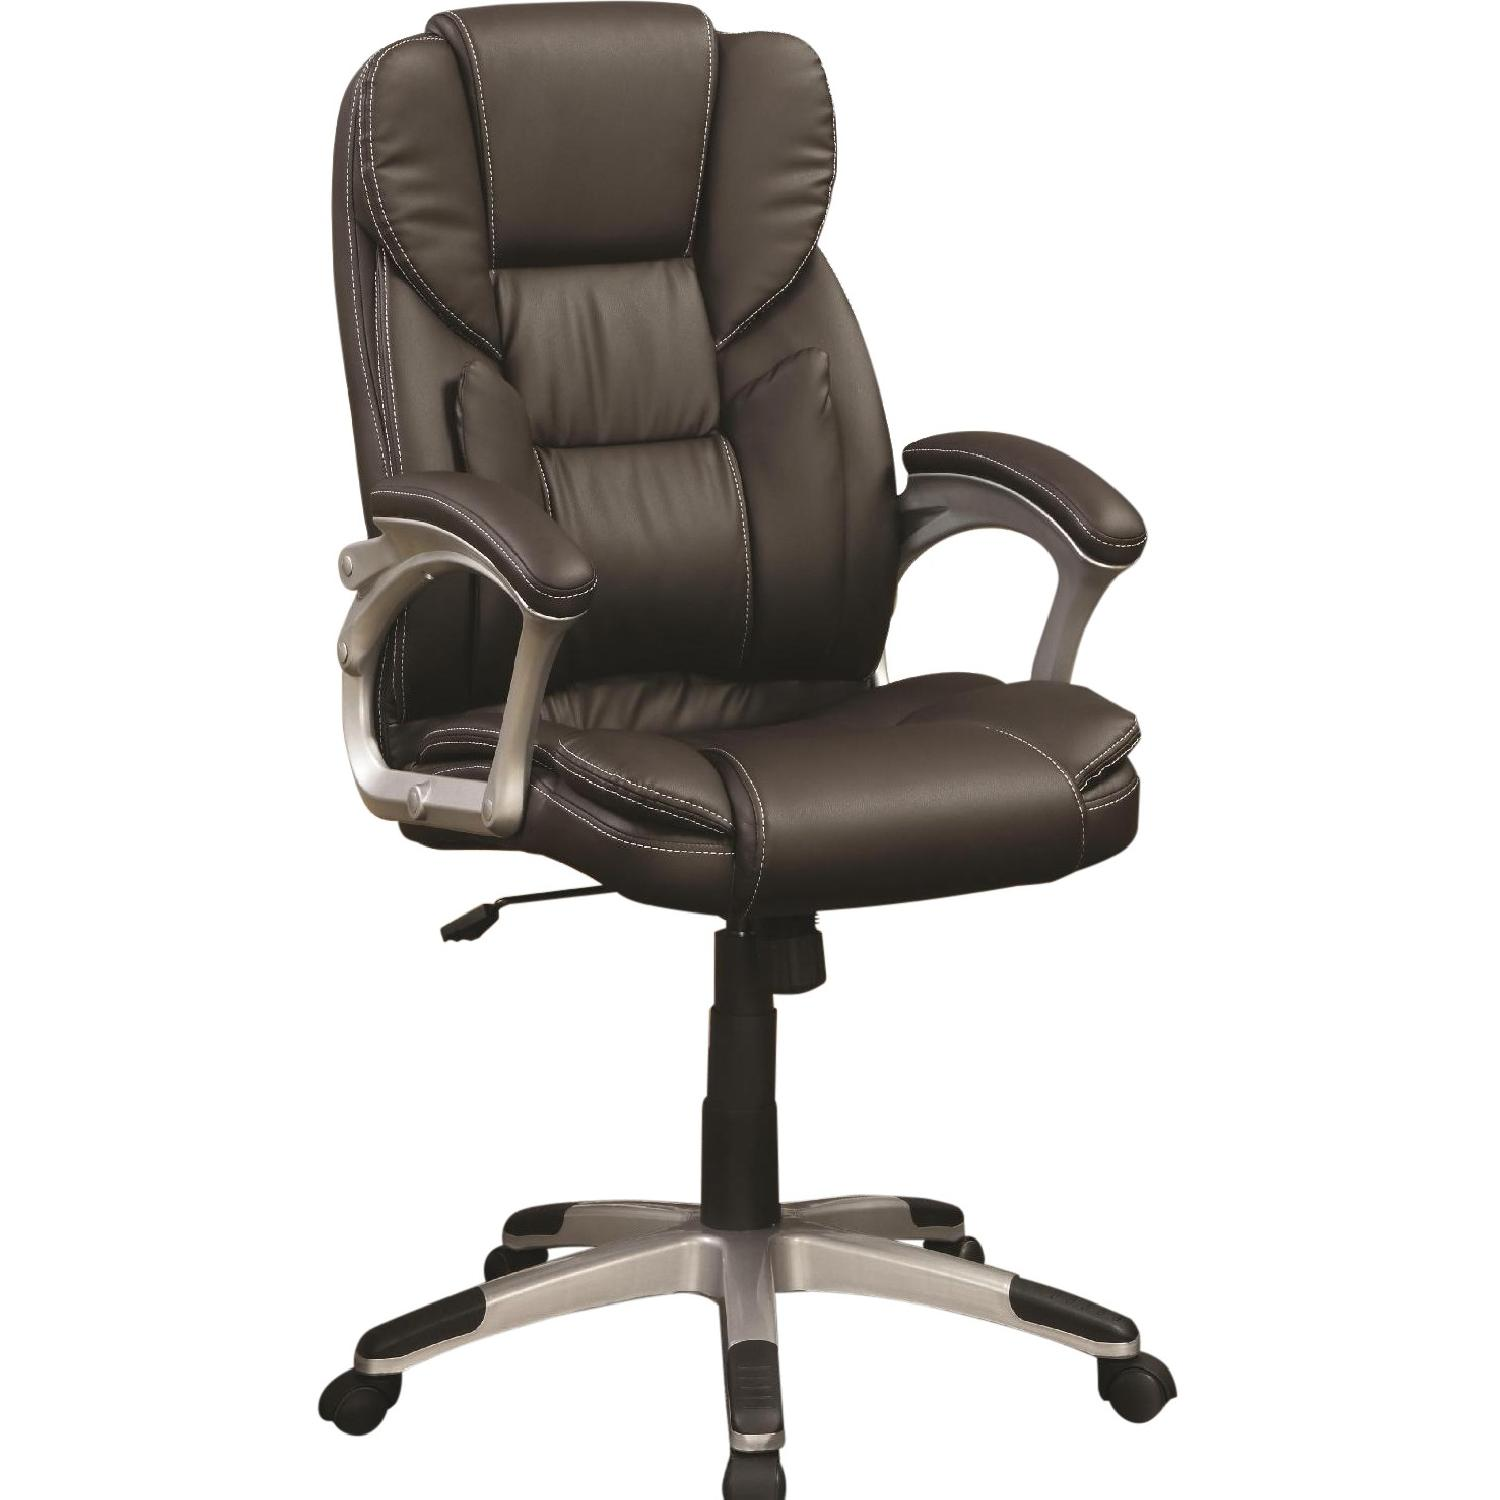 Modern Office Chair w/ Lumbar Support & a Bowtie Shaped Back Pillow in Dark Brown Faux Leather